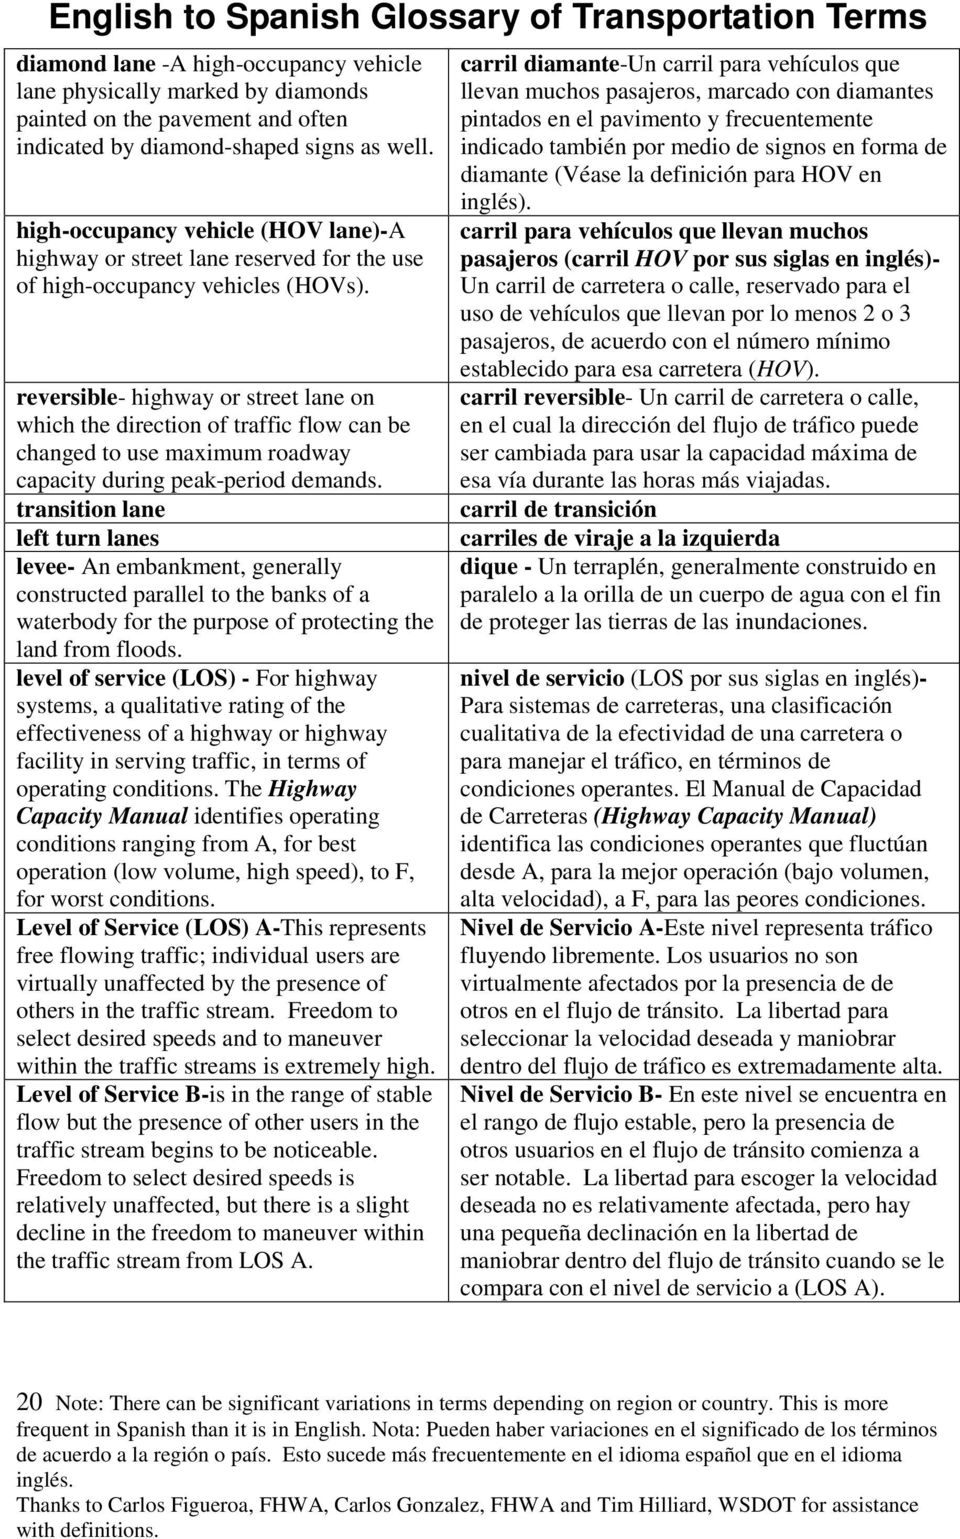 reversible- highway or street lane on which the direction of traffic flow can be changed to use maximum roadway capacity during peak-period demands.